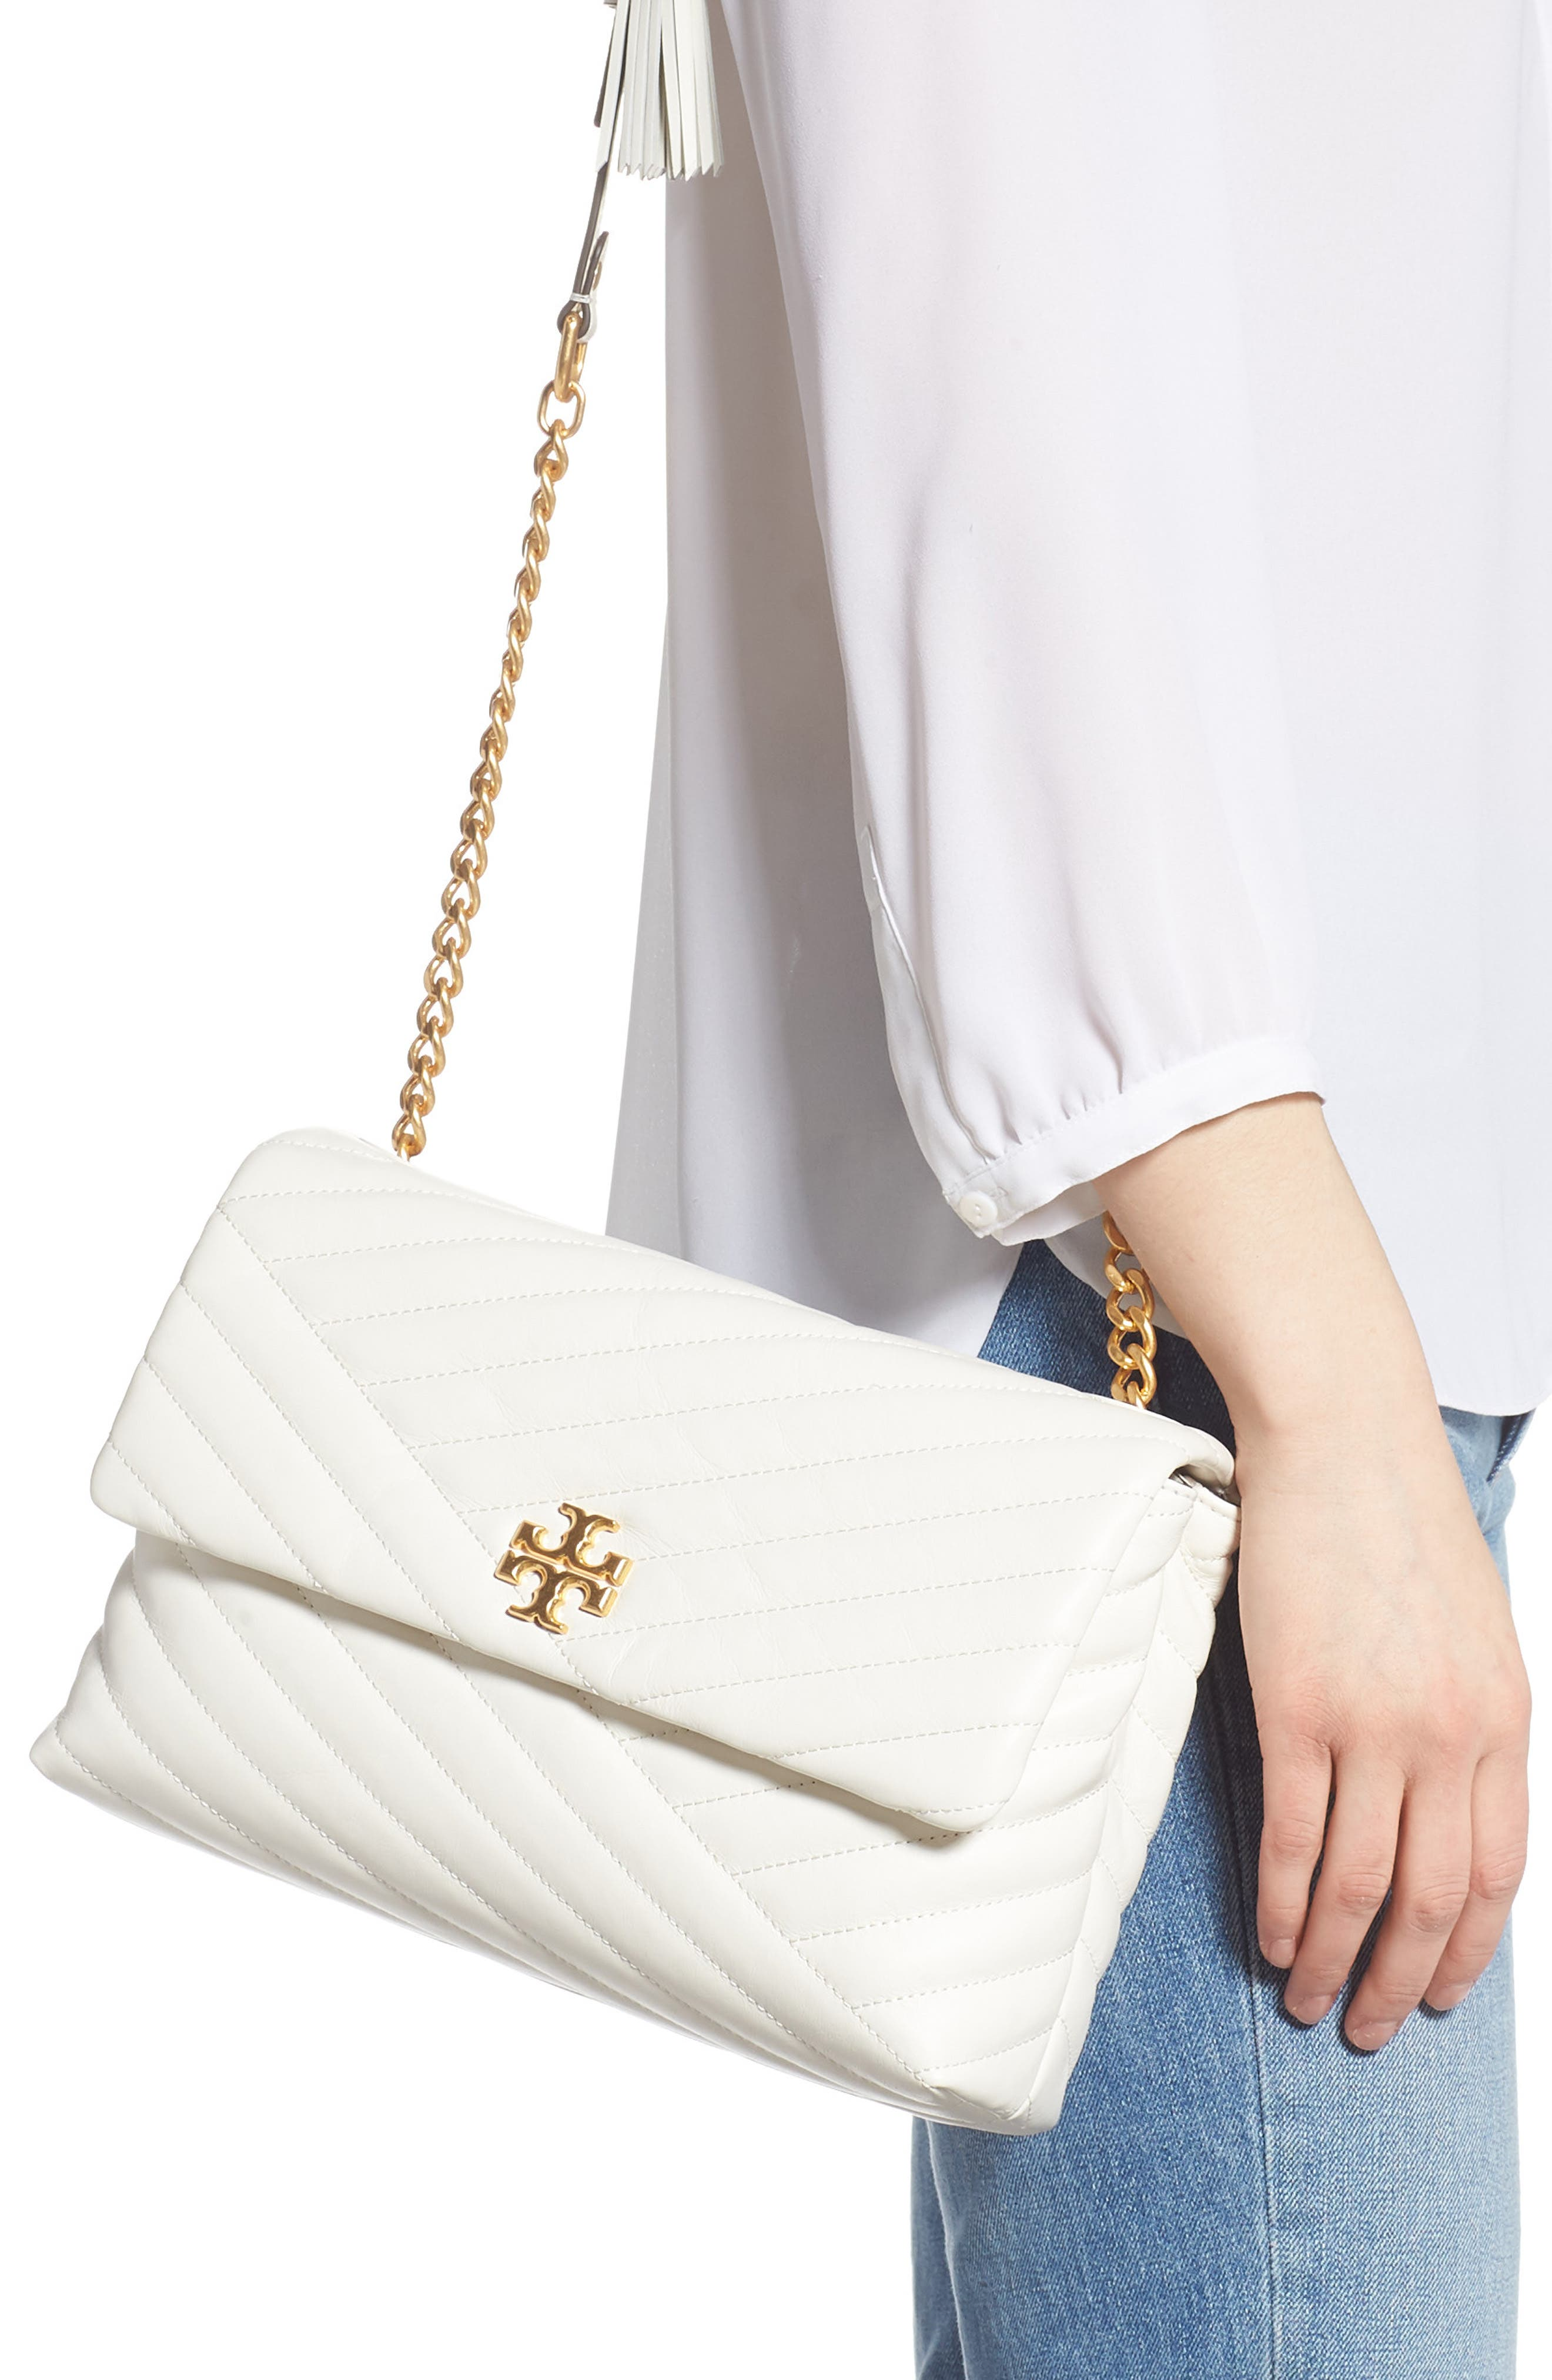 TORY BURCH, Kira Chevron Quilted Leather Shoulder Bag, Alternate thumbnail 2, color, NEW IVORY